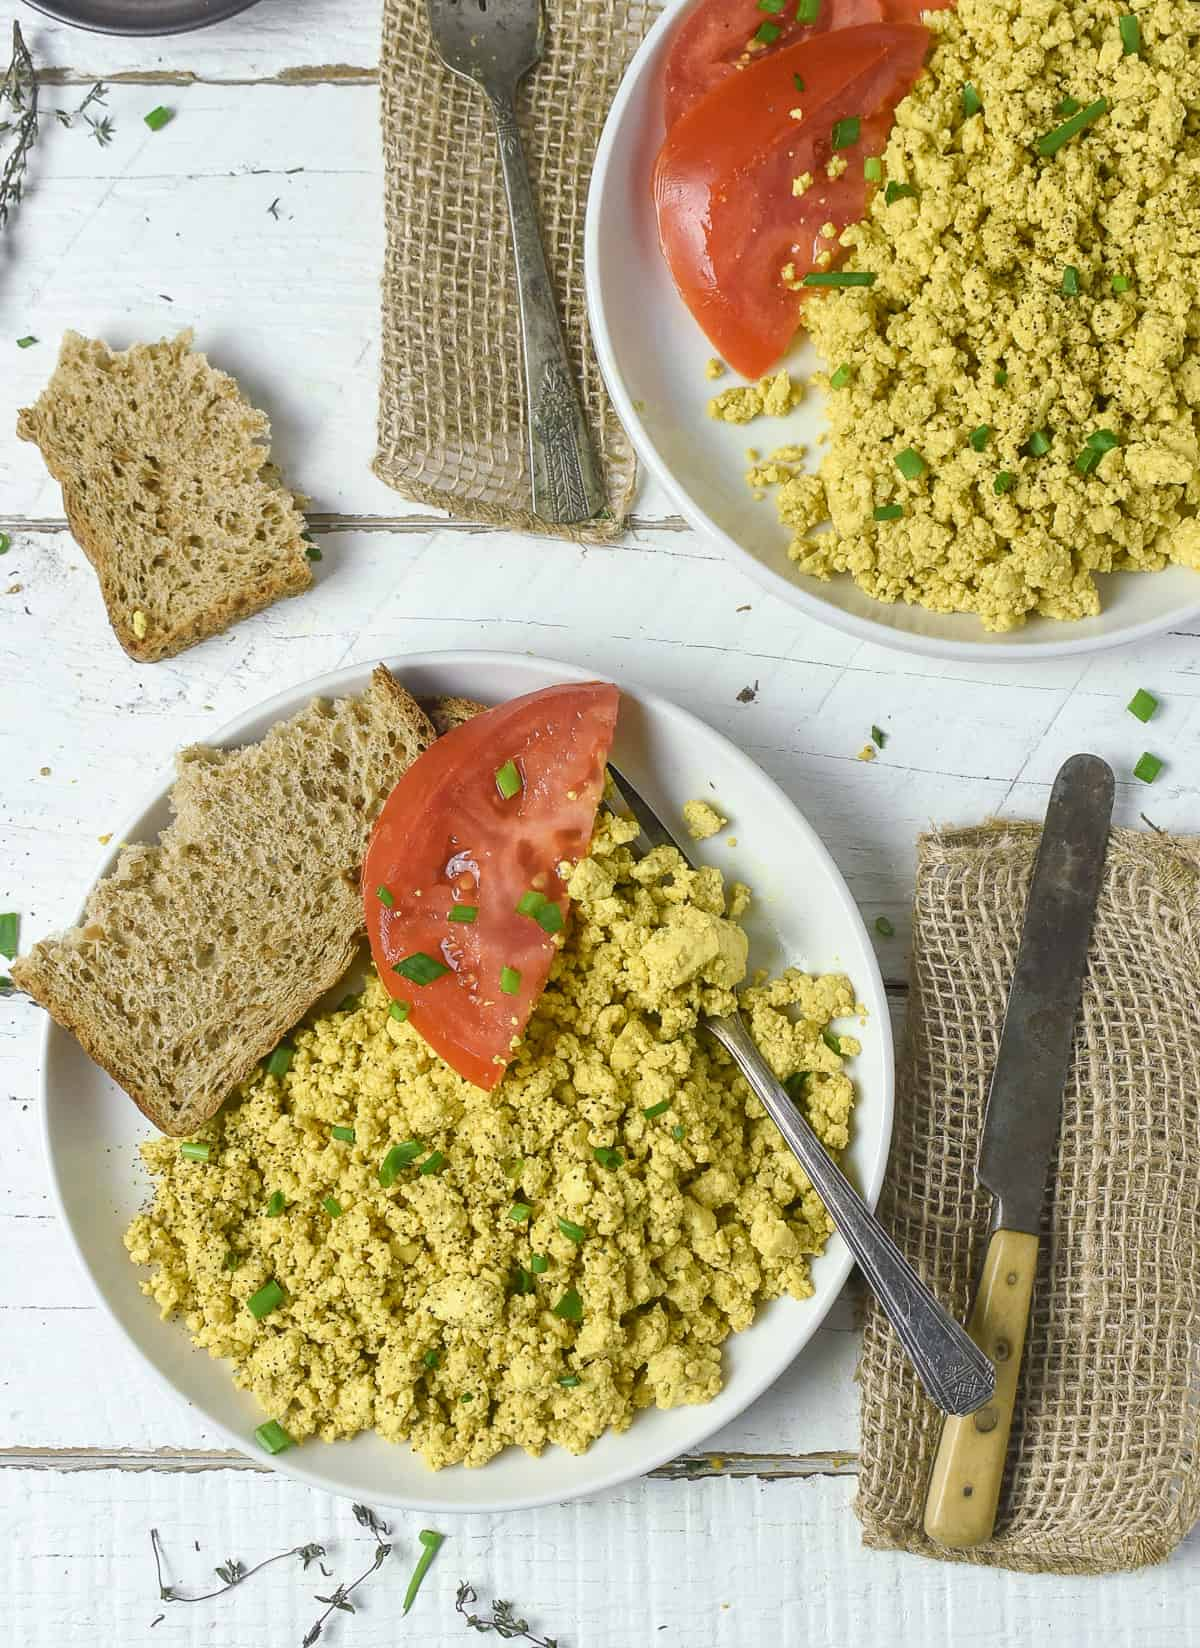 Tofu scramble on plate with toast and tomato.